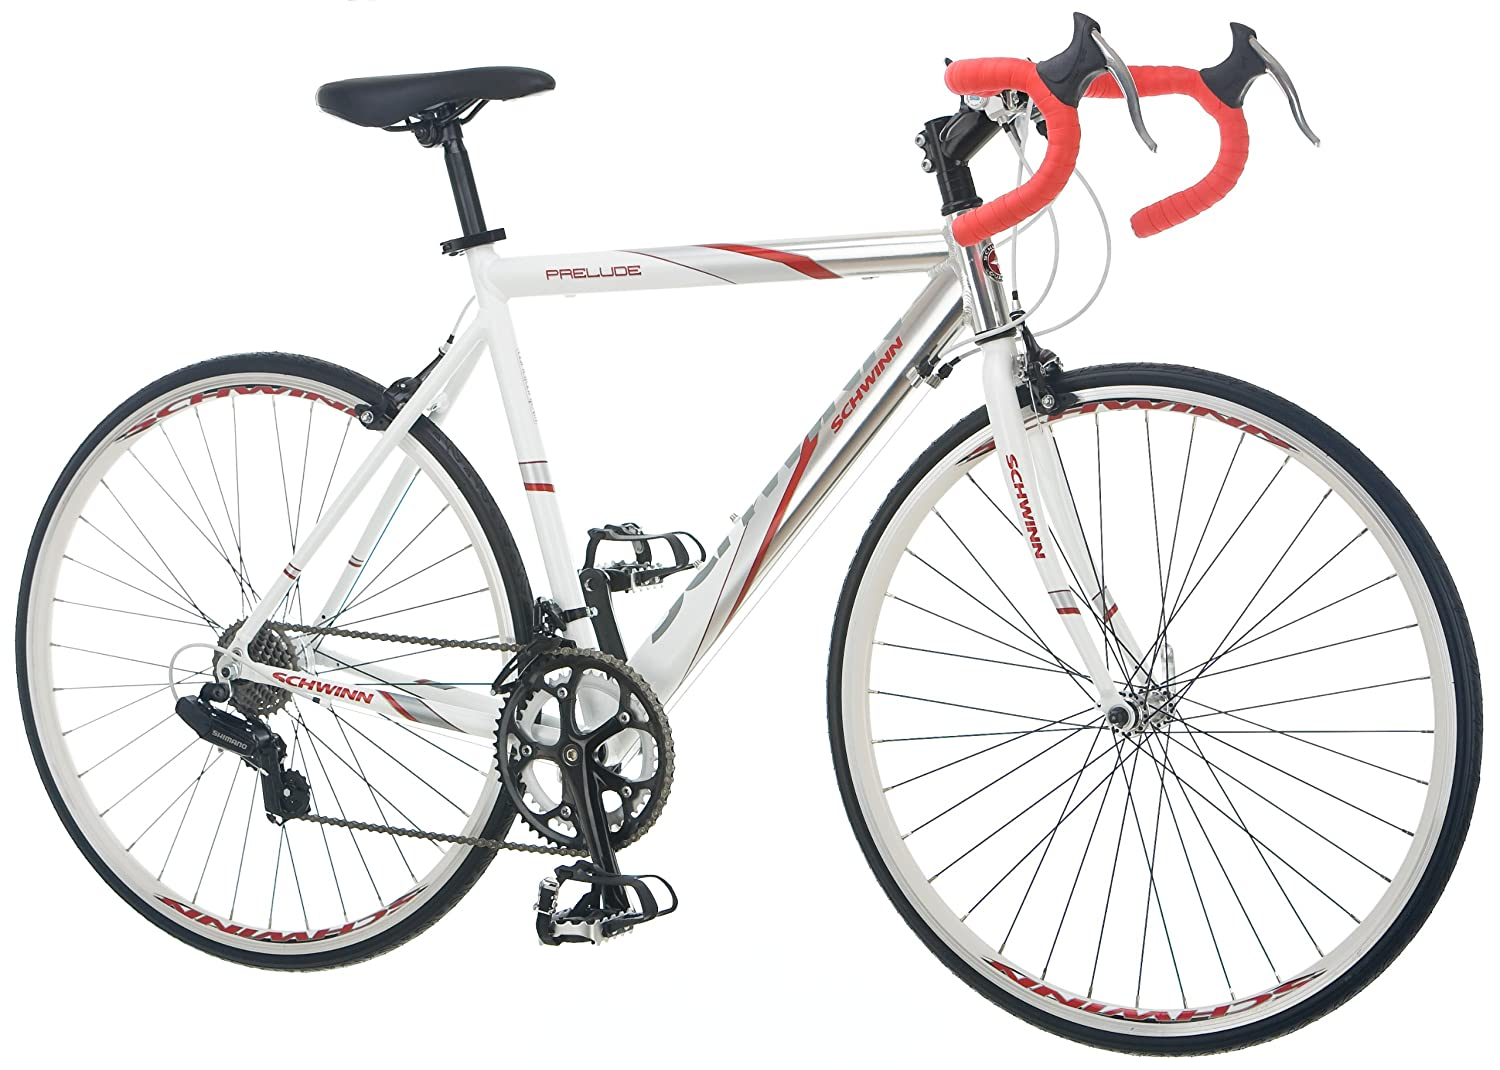 Bikes Schwinn For Sale Amazon com Schwinn Men s